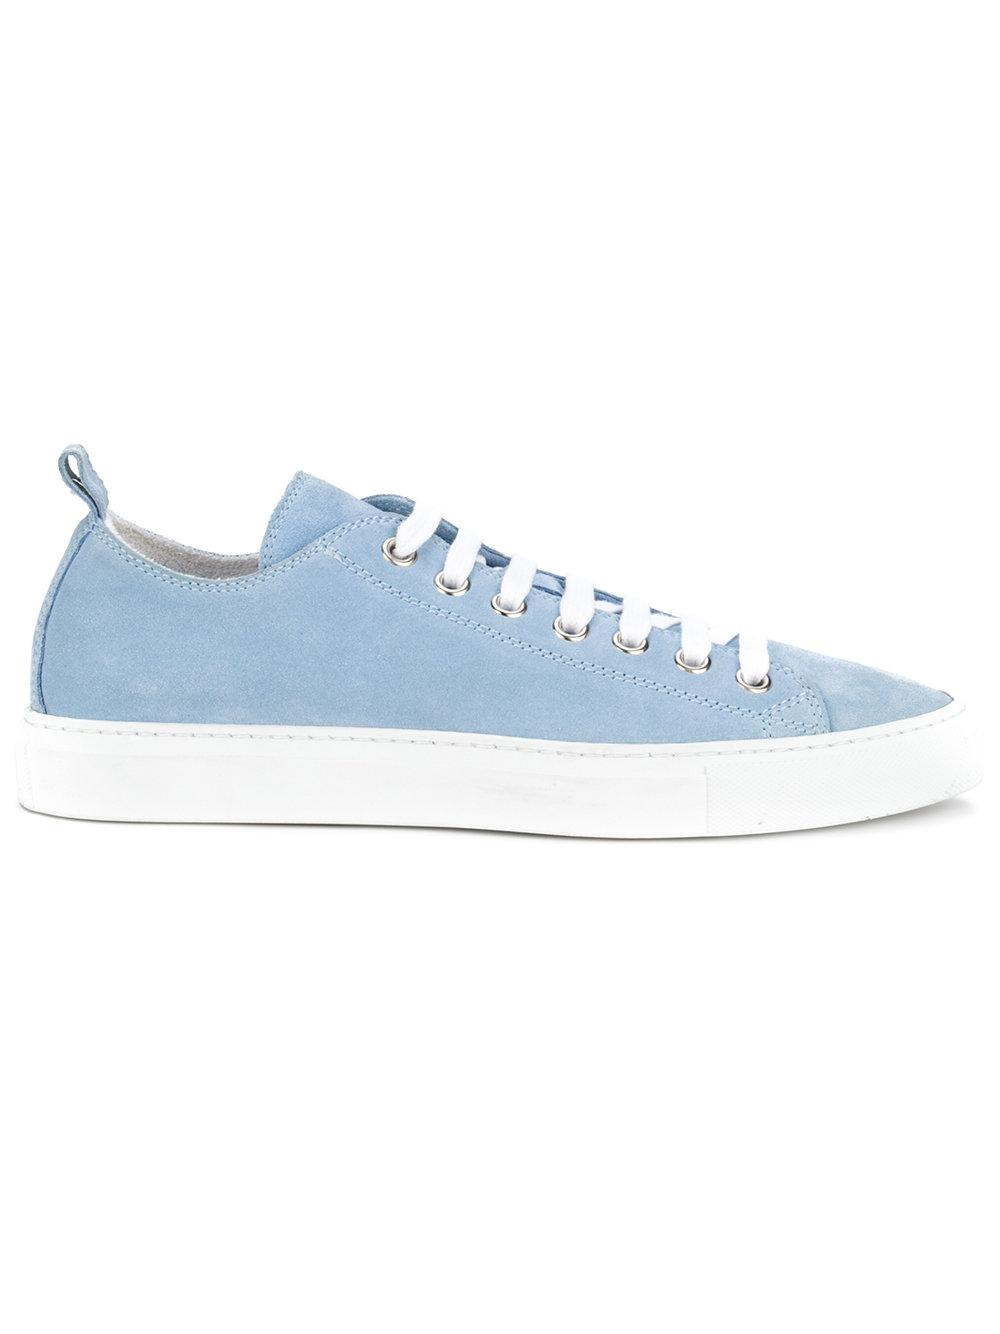 Dsquared2 Classic Low-top Sneakers - Blue